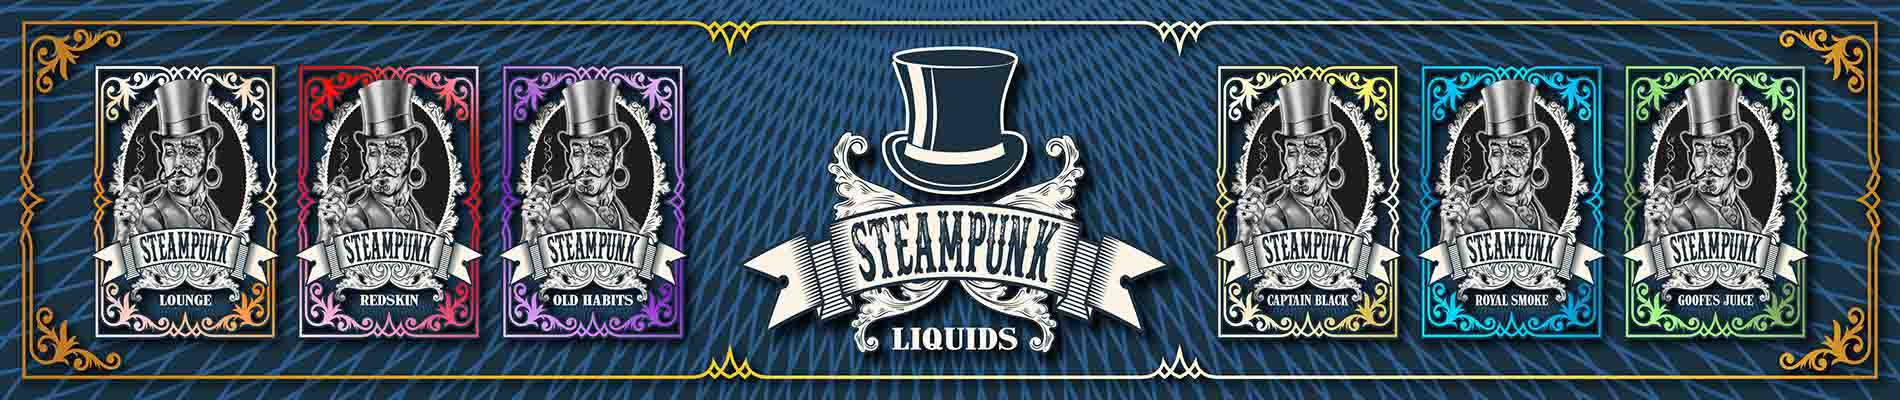 Steam Punk Banner